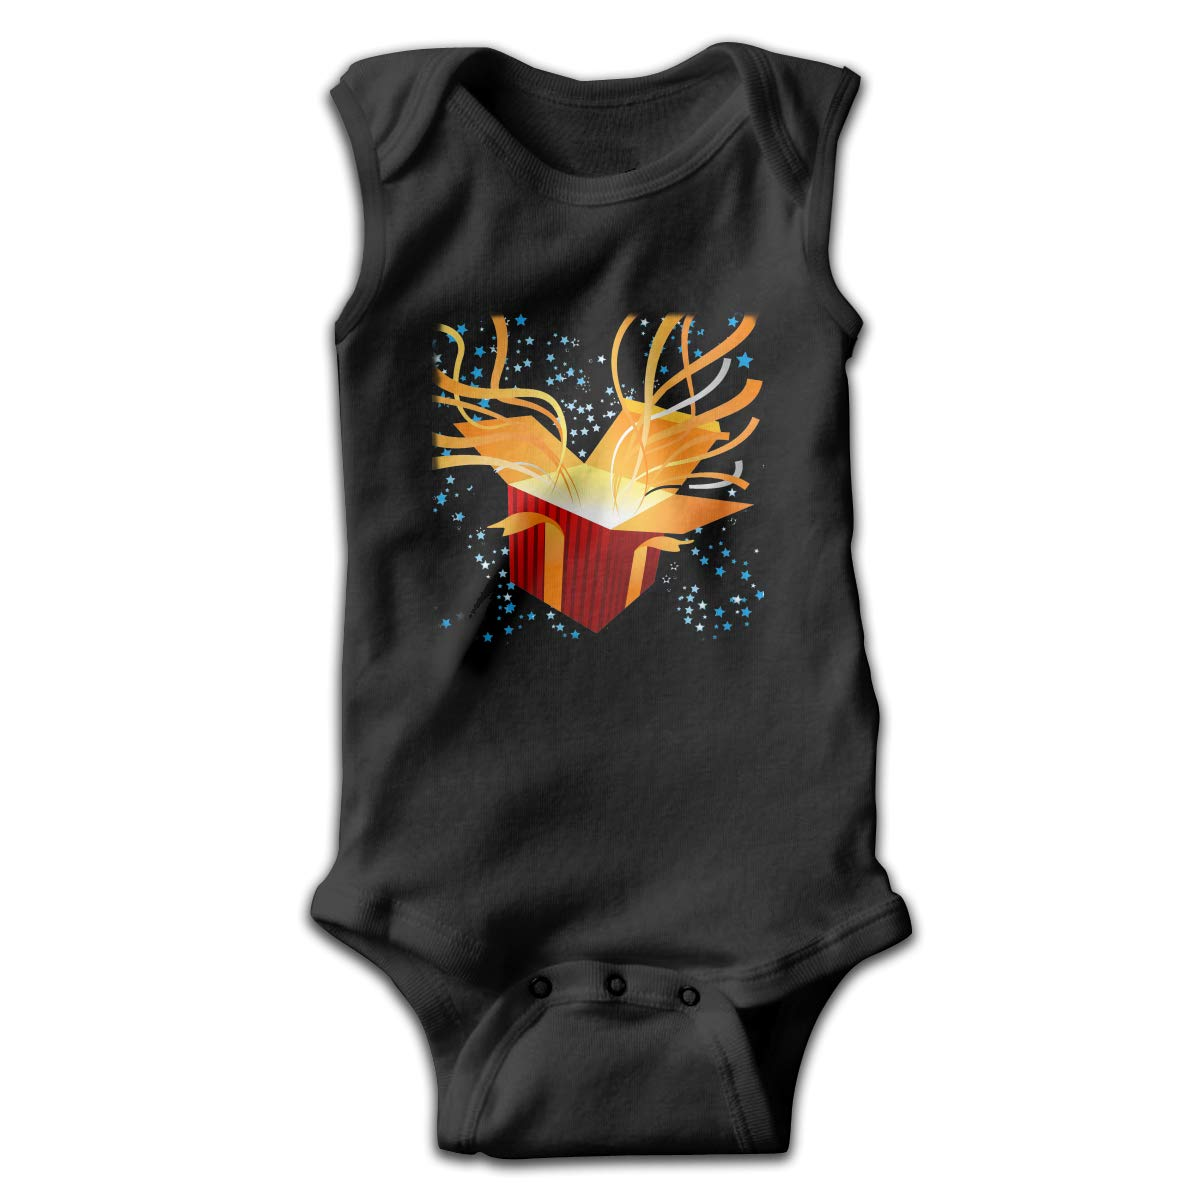 Toddler Baby Boys Rompers Sleeveless Cotton Onesie,Gift Box Outfit Spring Pajamas